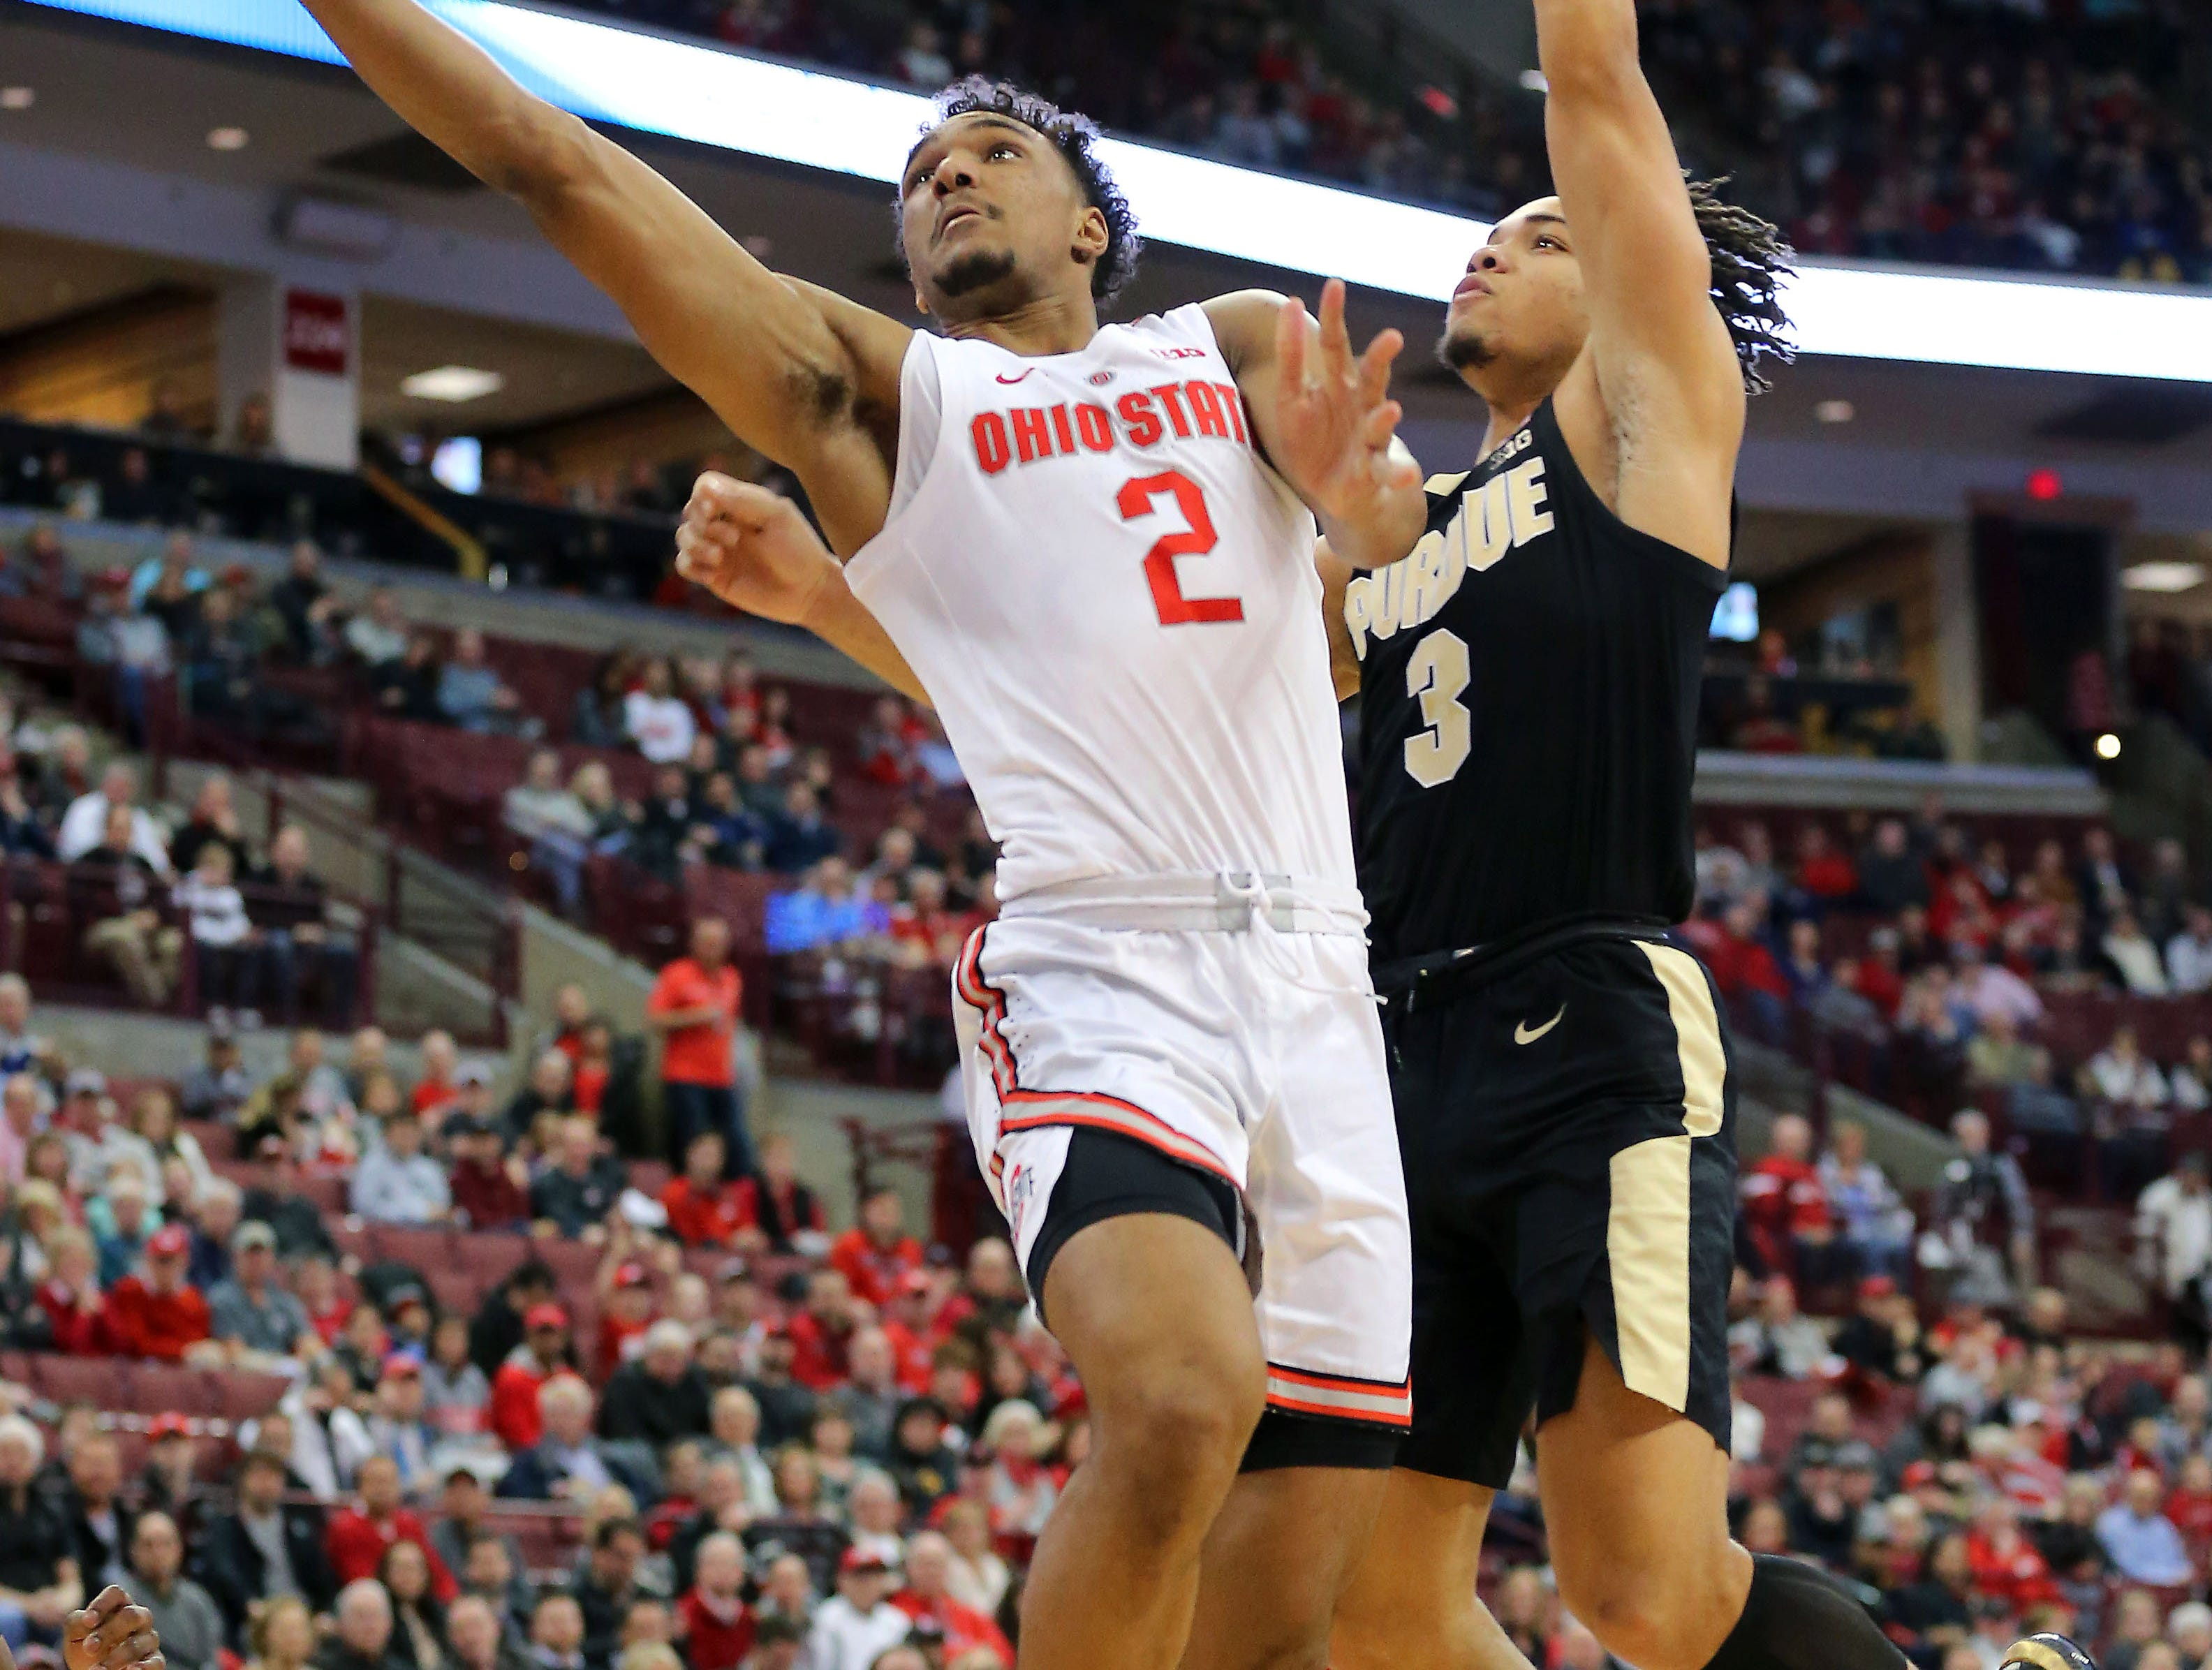 Jan 23, 2019; Columbus, OH, USA; Ohio State Buckeyes guard Musa Jallow (2) shoots against Purdue Boilermakers guard Carsen Edwards (3) during the first half at Value City Arena. Mandatory Credit: Joe Maiorana-USA TODAY Sports